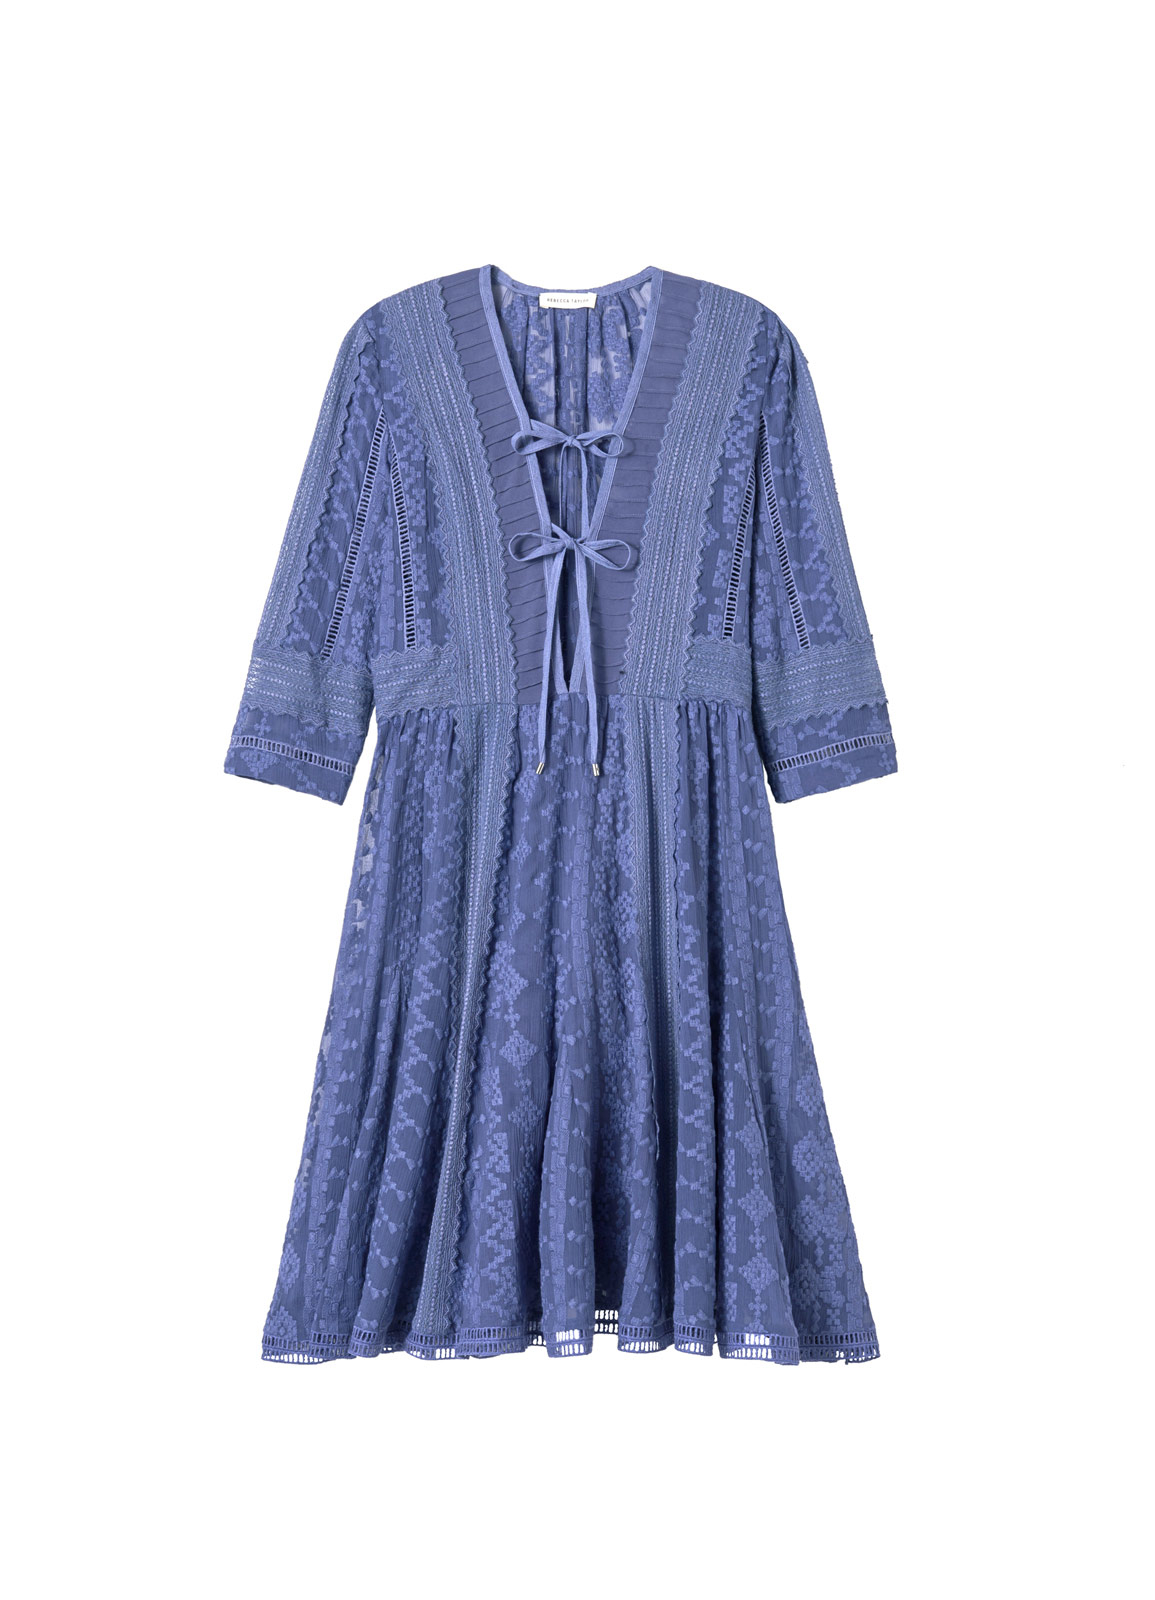 Rebecca taylor embroidered chiffon dress in blue lyst